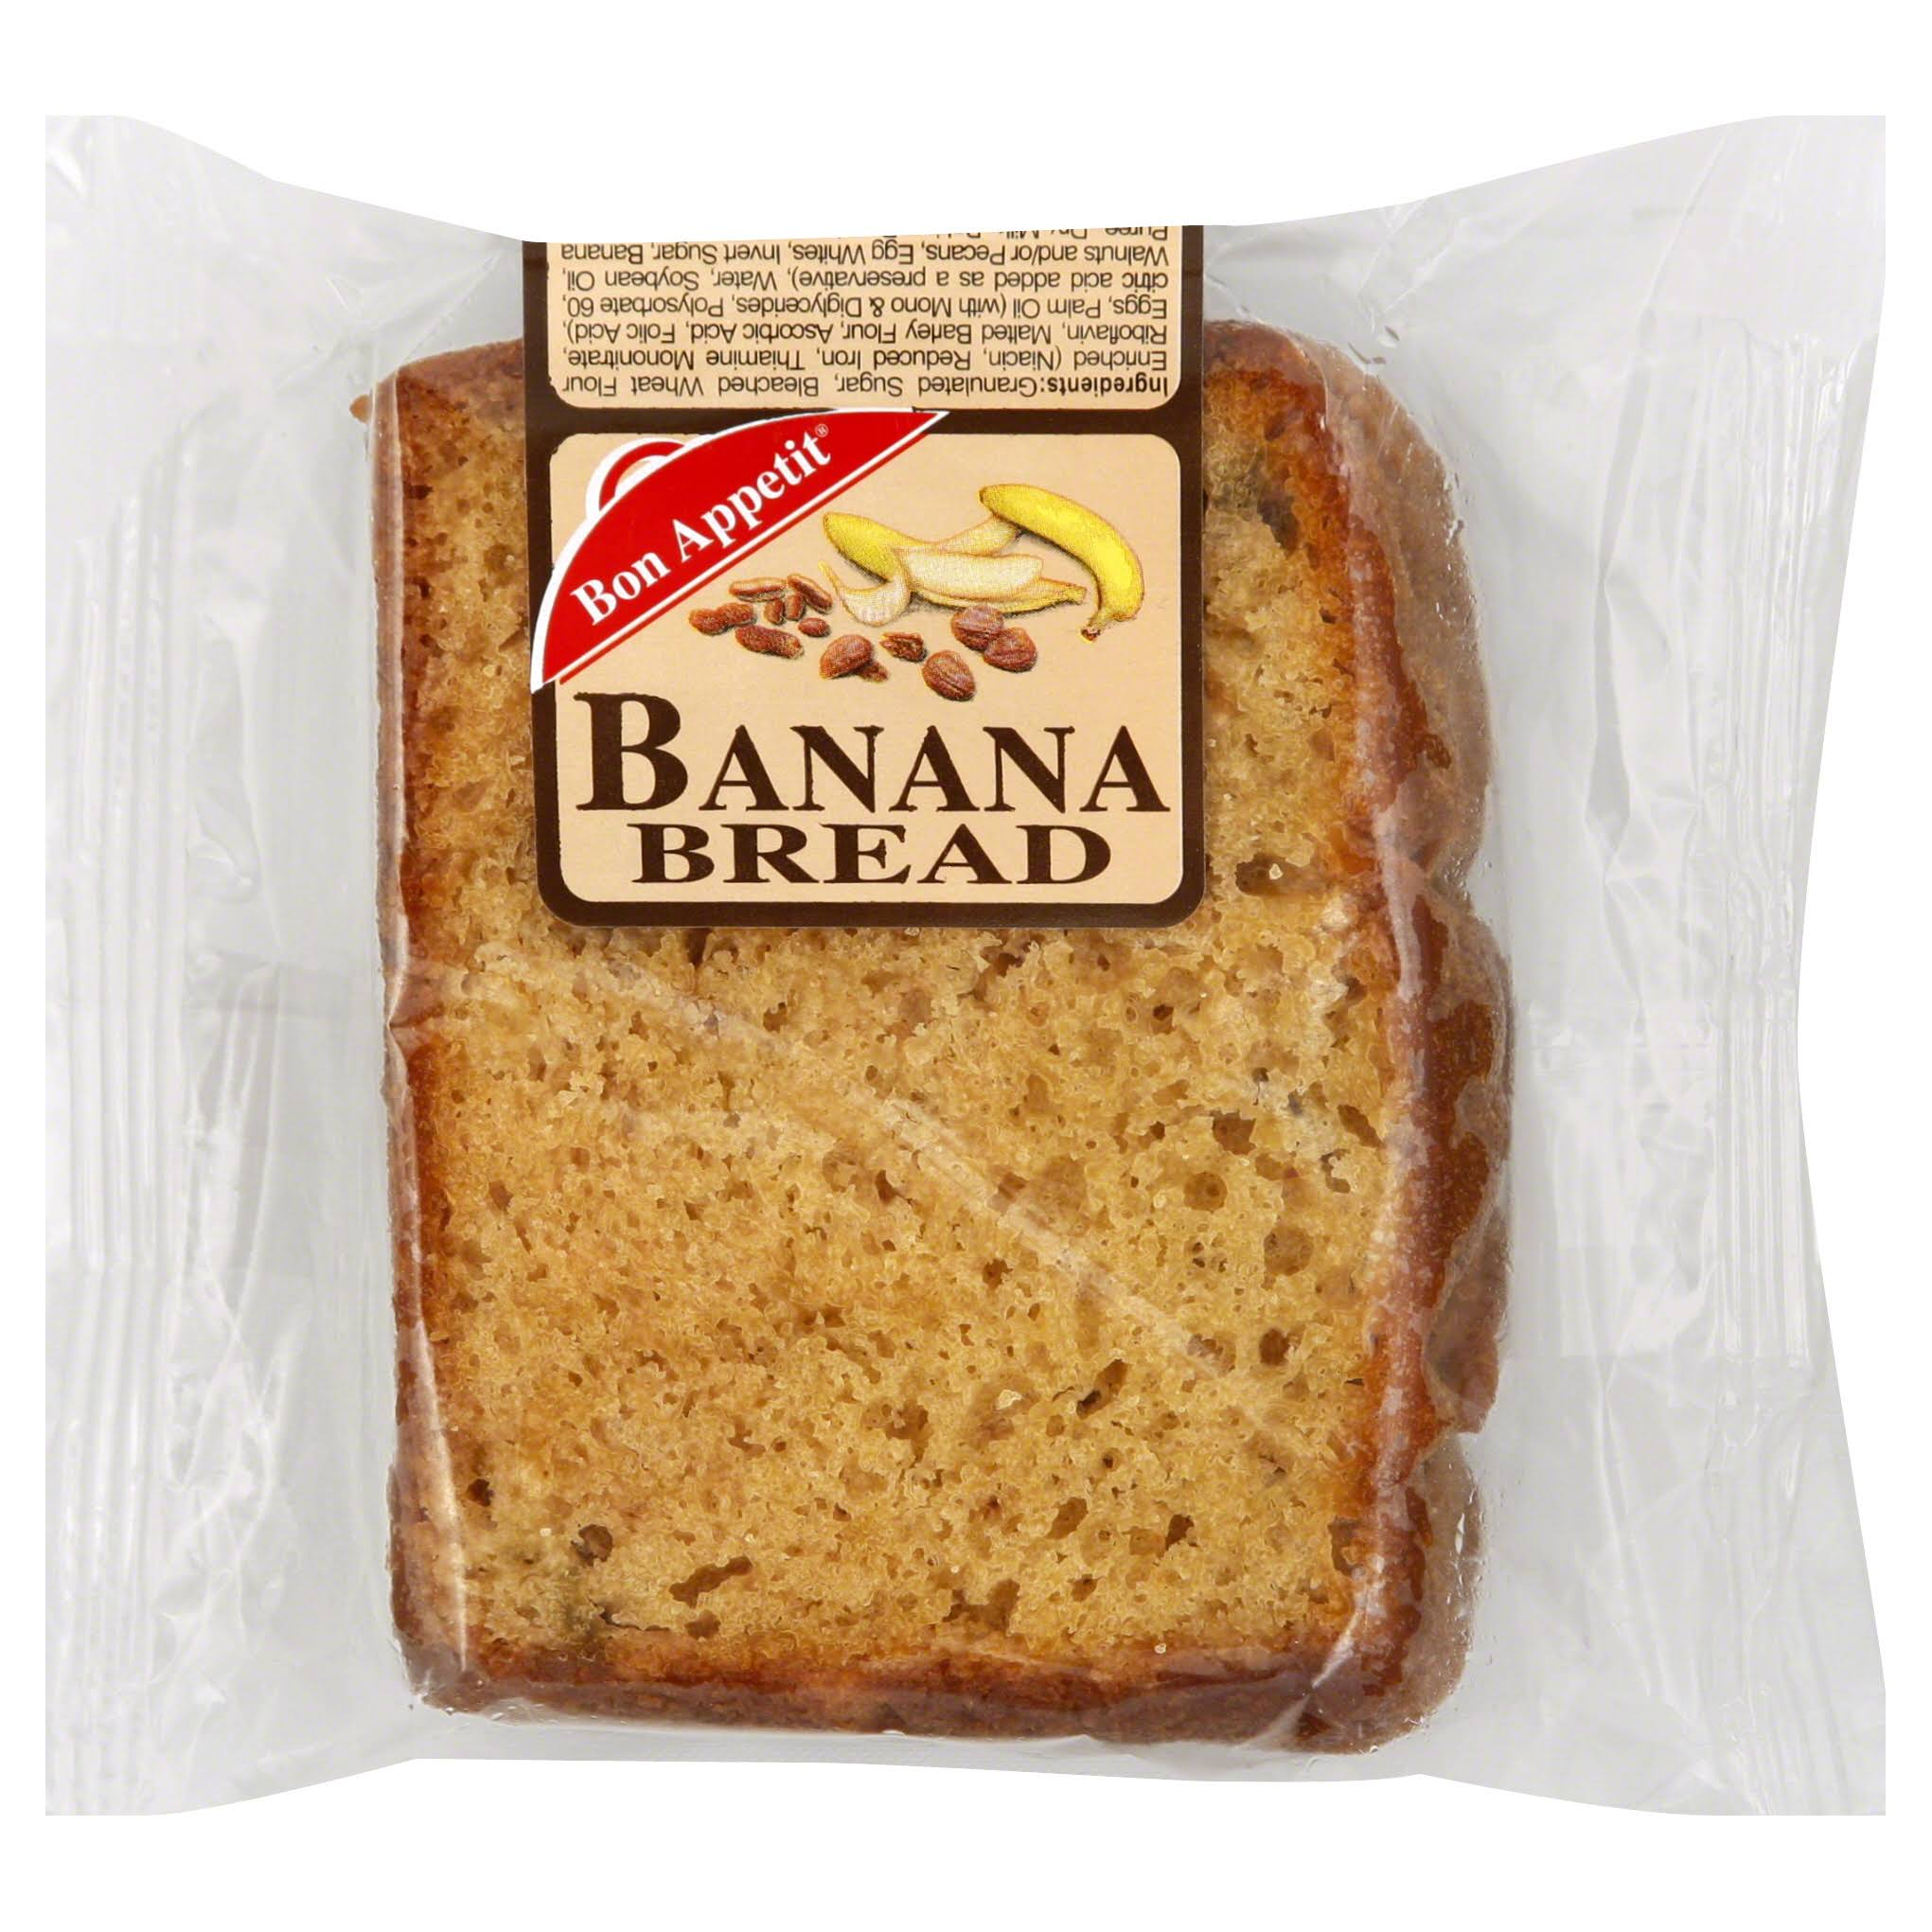 Bon Appetit Banana Bread - 4 oz